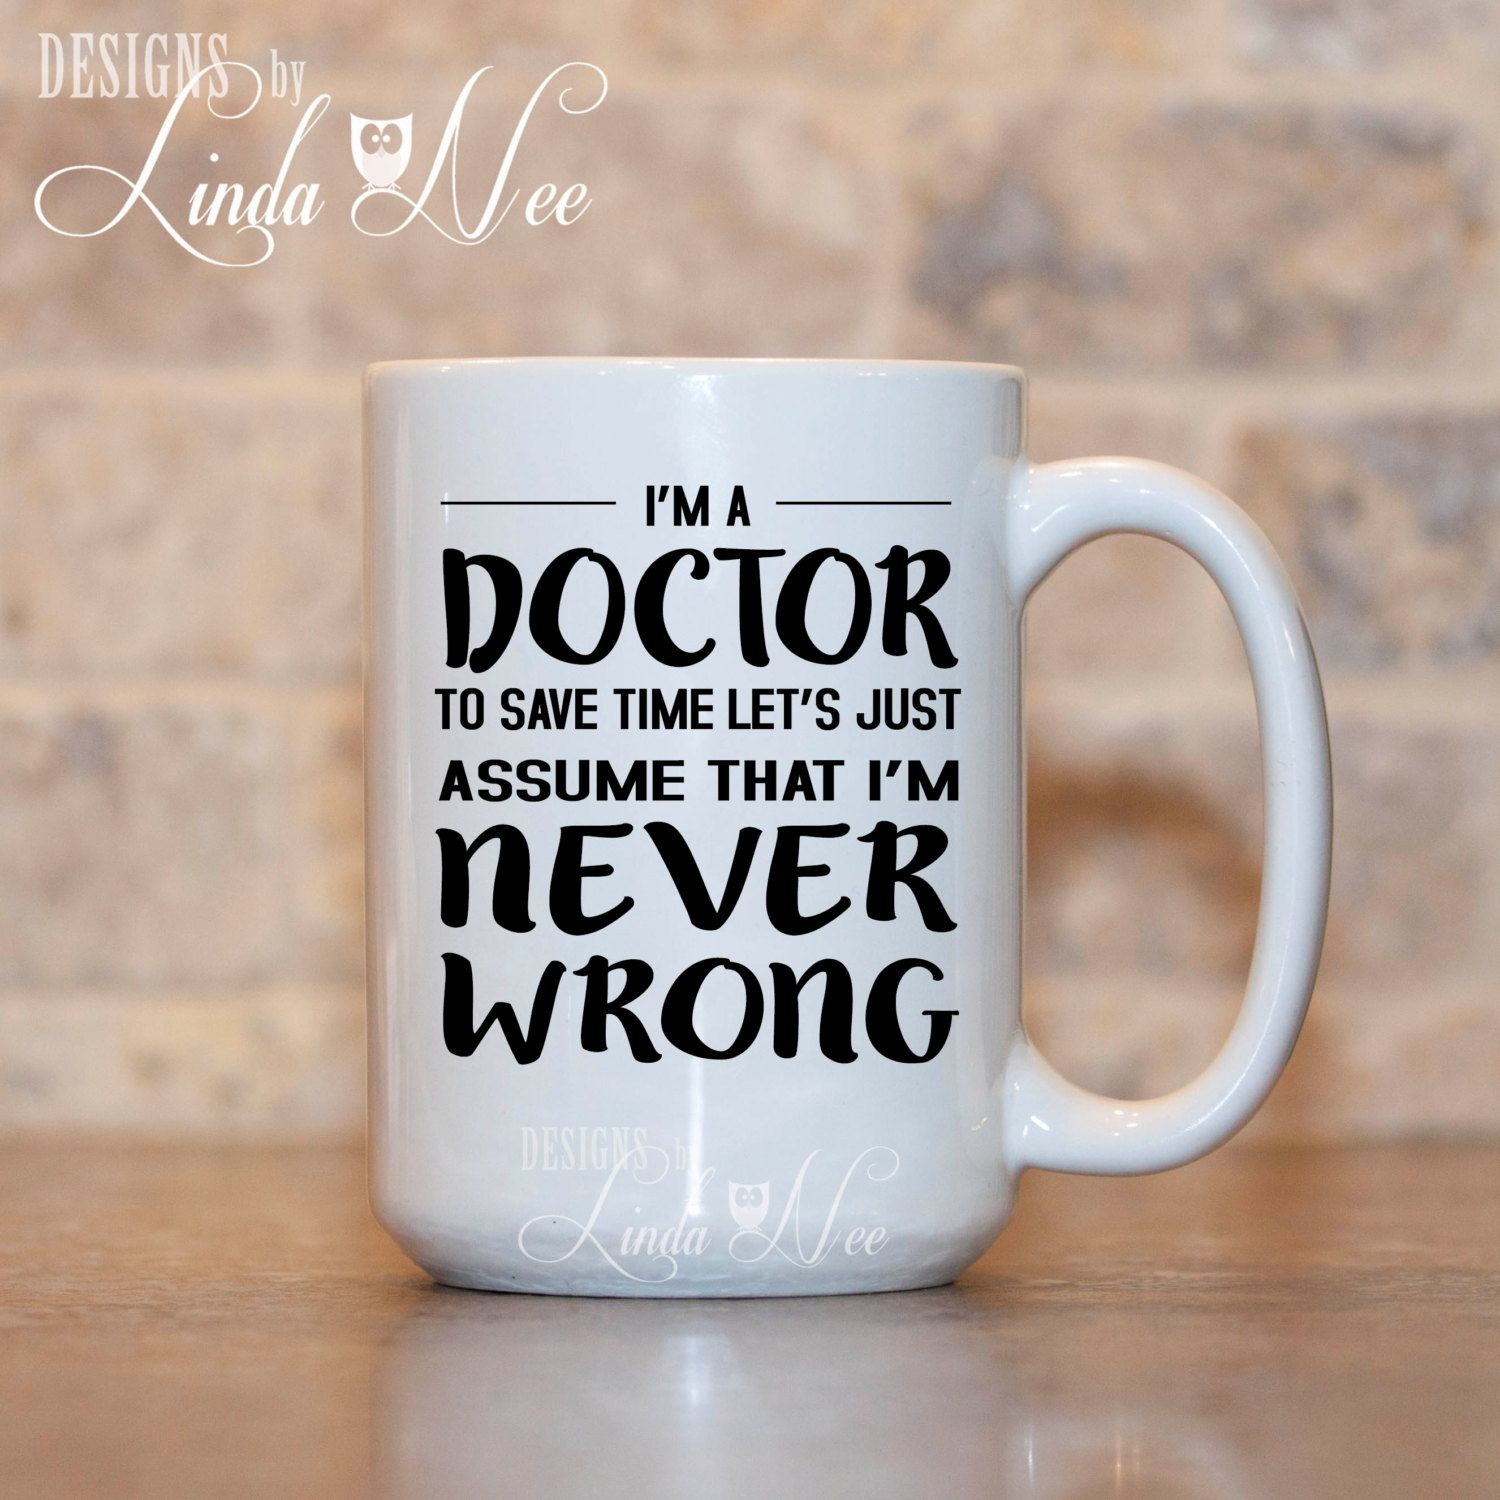 Worlds best doctor coffee mugs - Doctor Coffee Mug Gift For Doctor Never Wrong Doctor Funny Doctor Gift Medical School Gift Med School Phd Mug Funny Doctor Mug Msa110